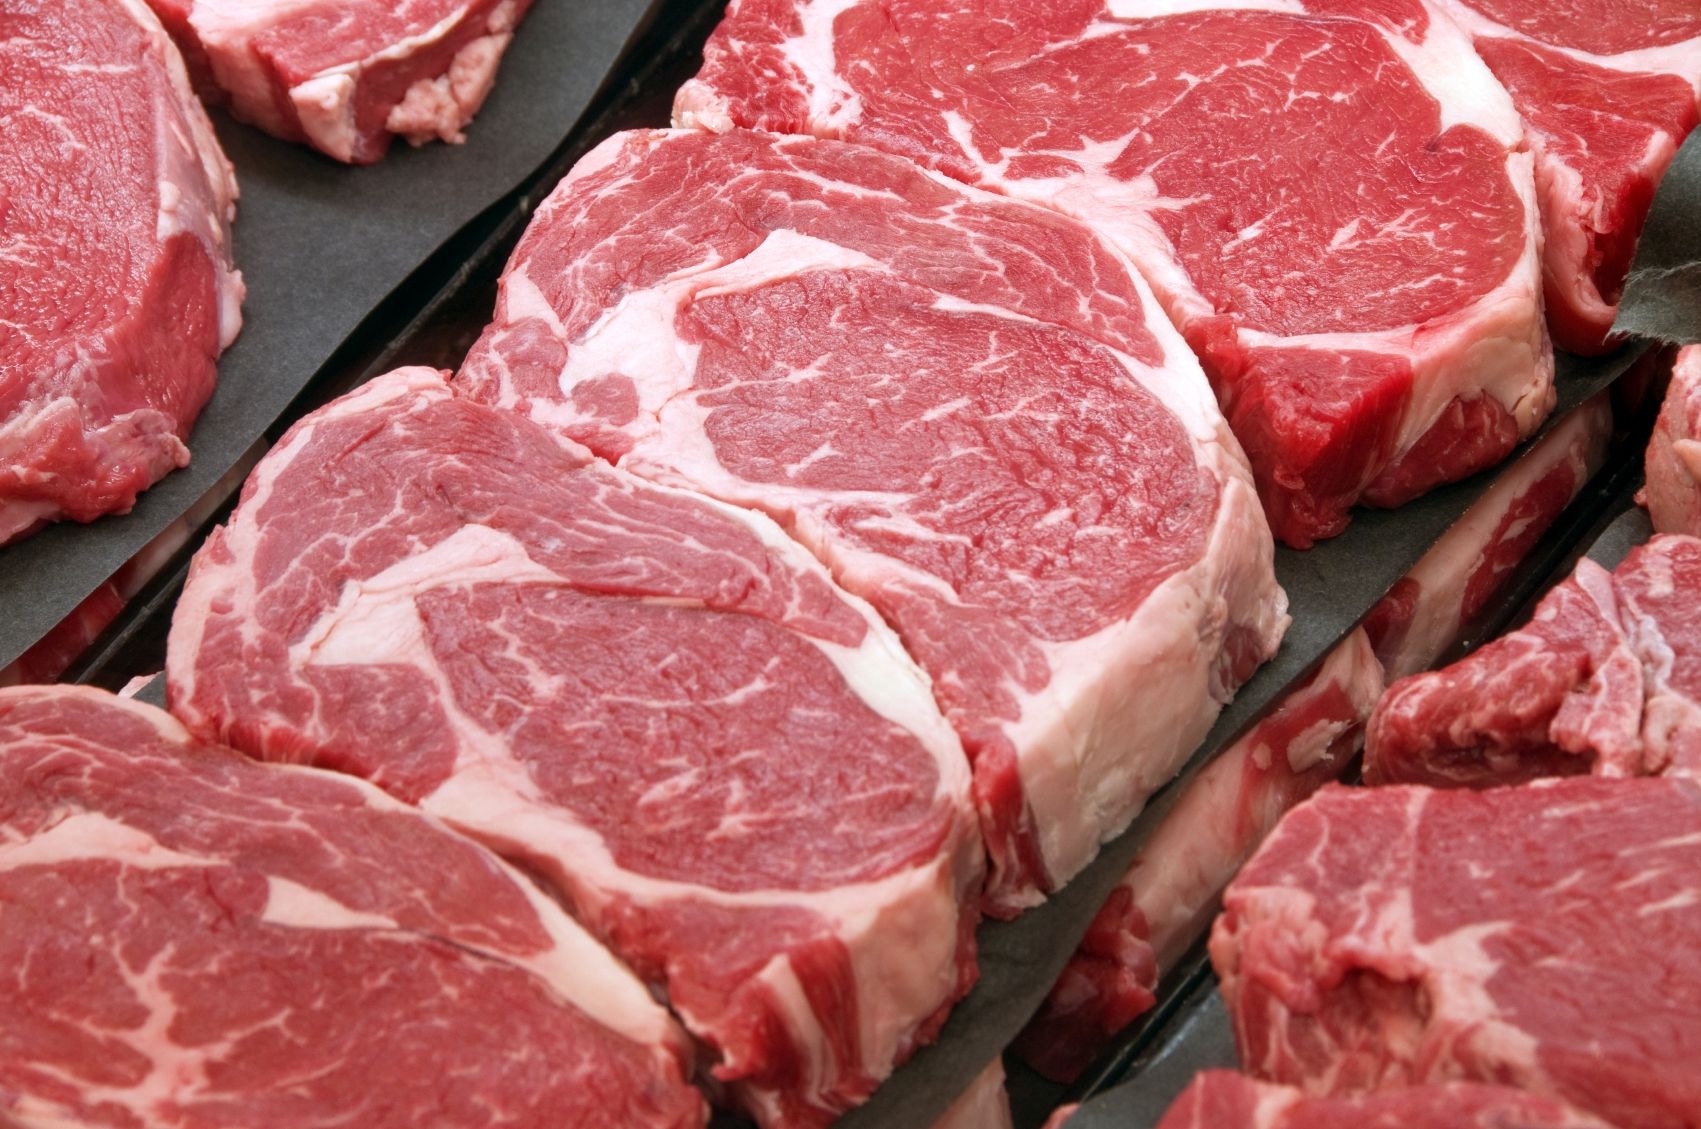 US suspends Brazilian beef imports over safety concerns